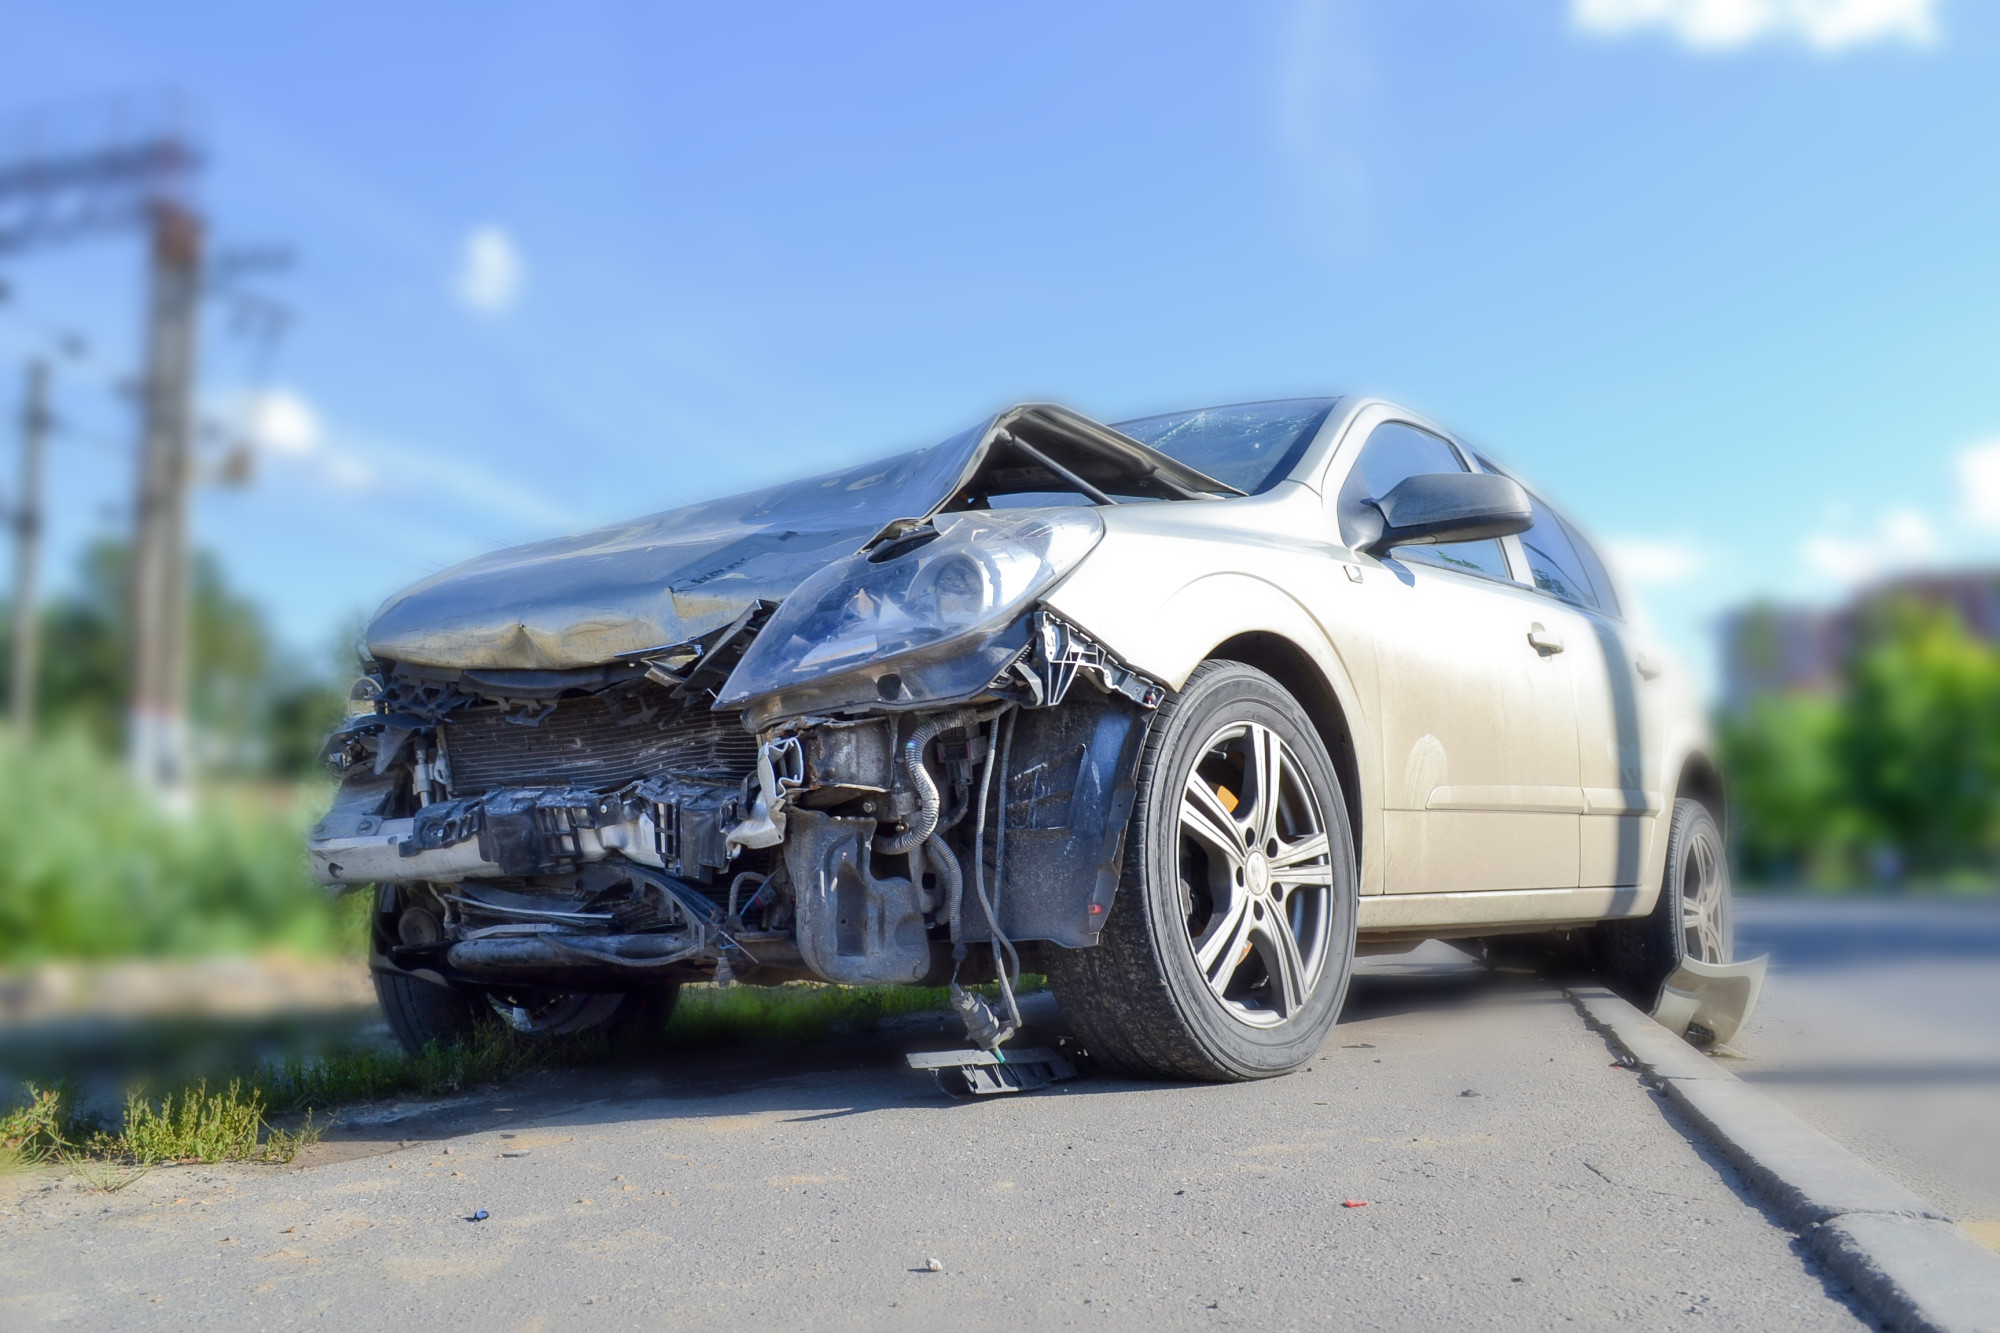 What Does Totaled Mean? Understanding Why Insurance Totals Cars